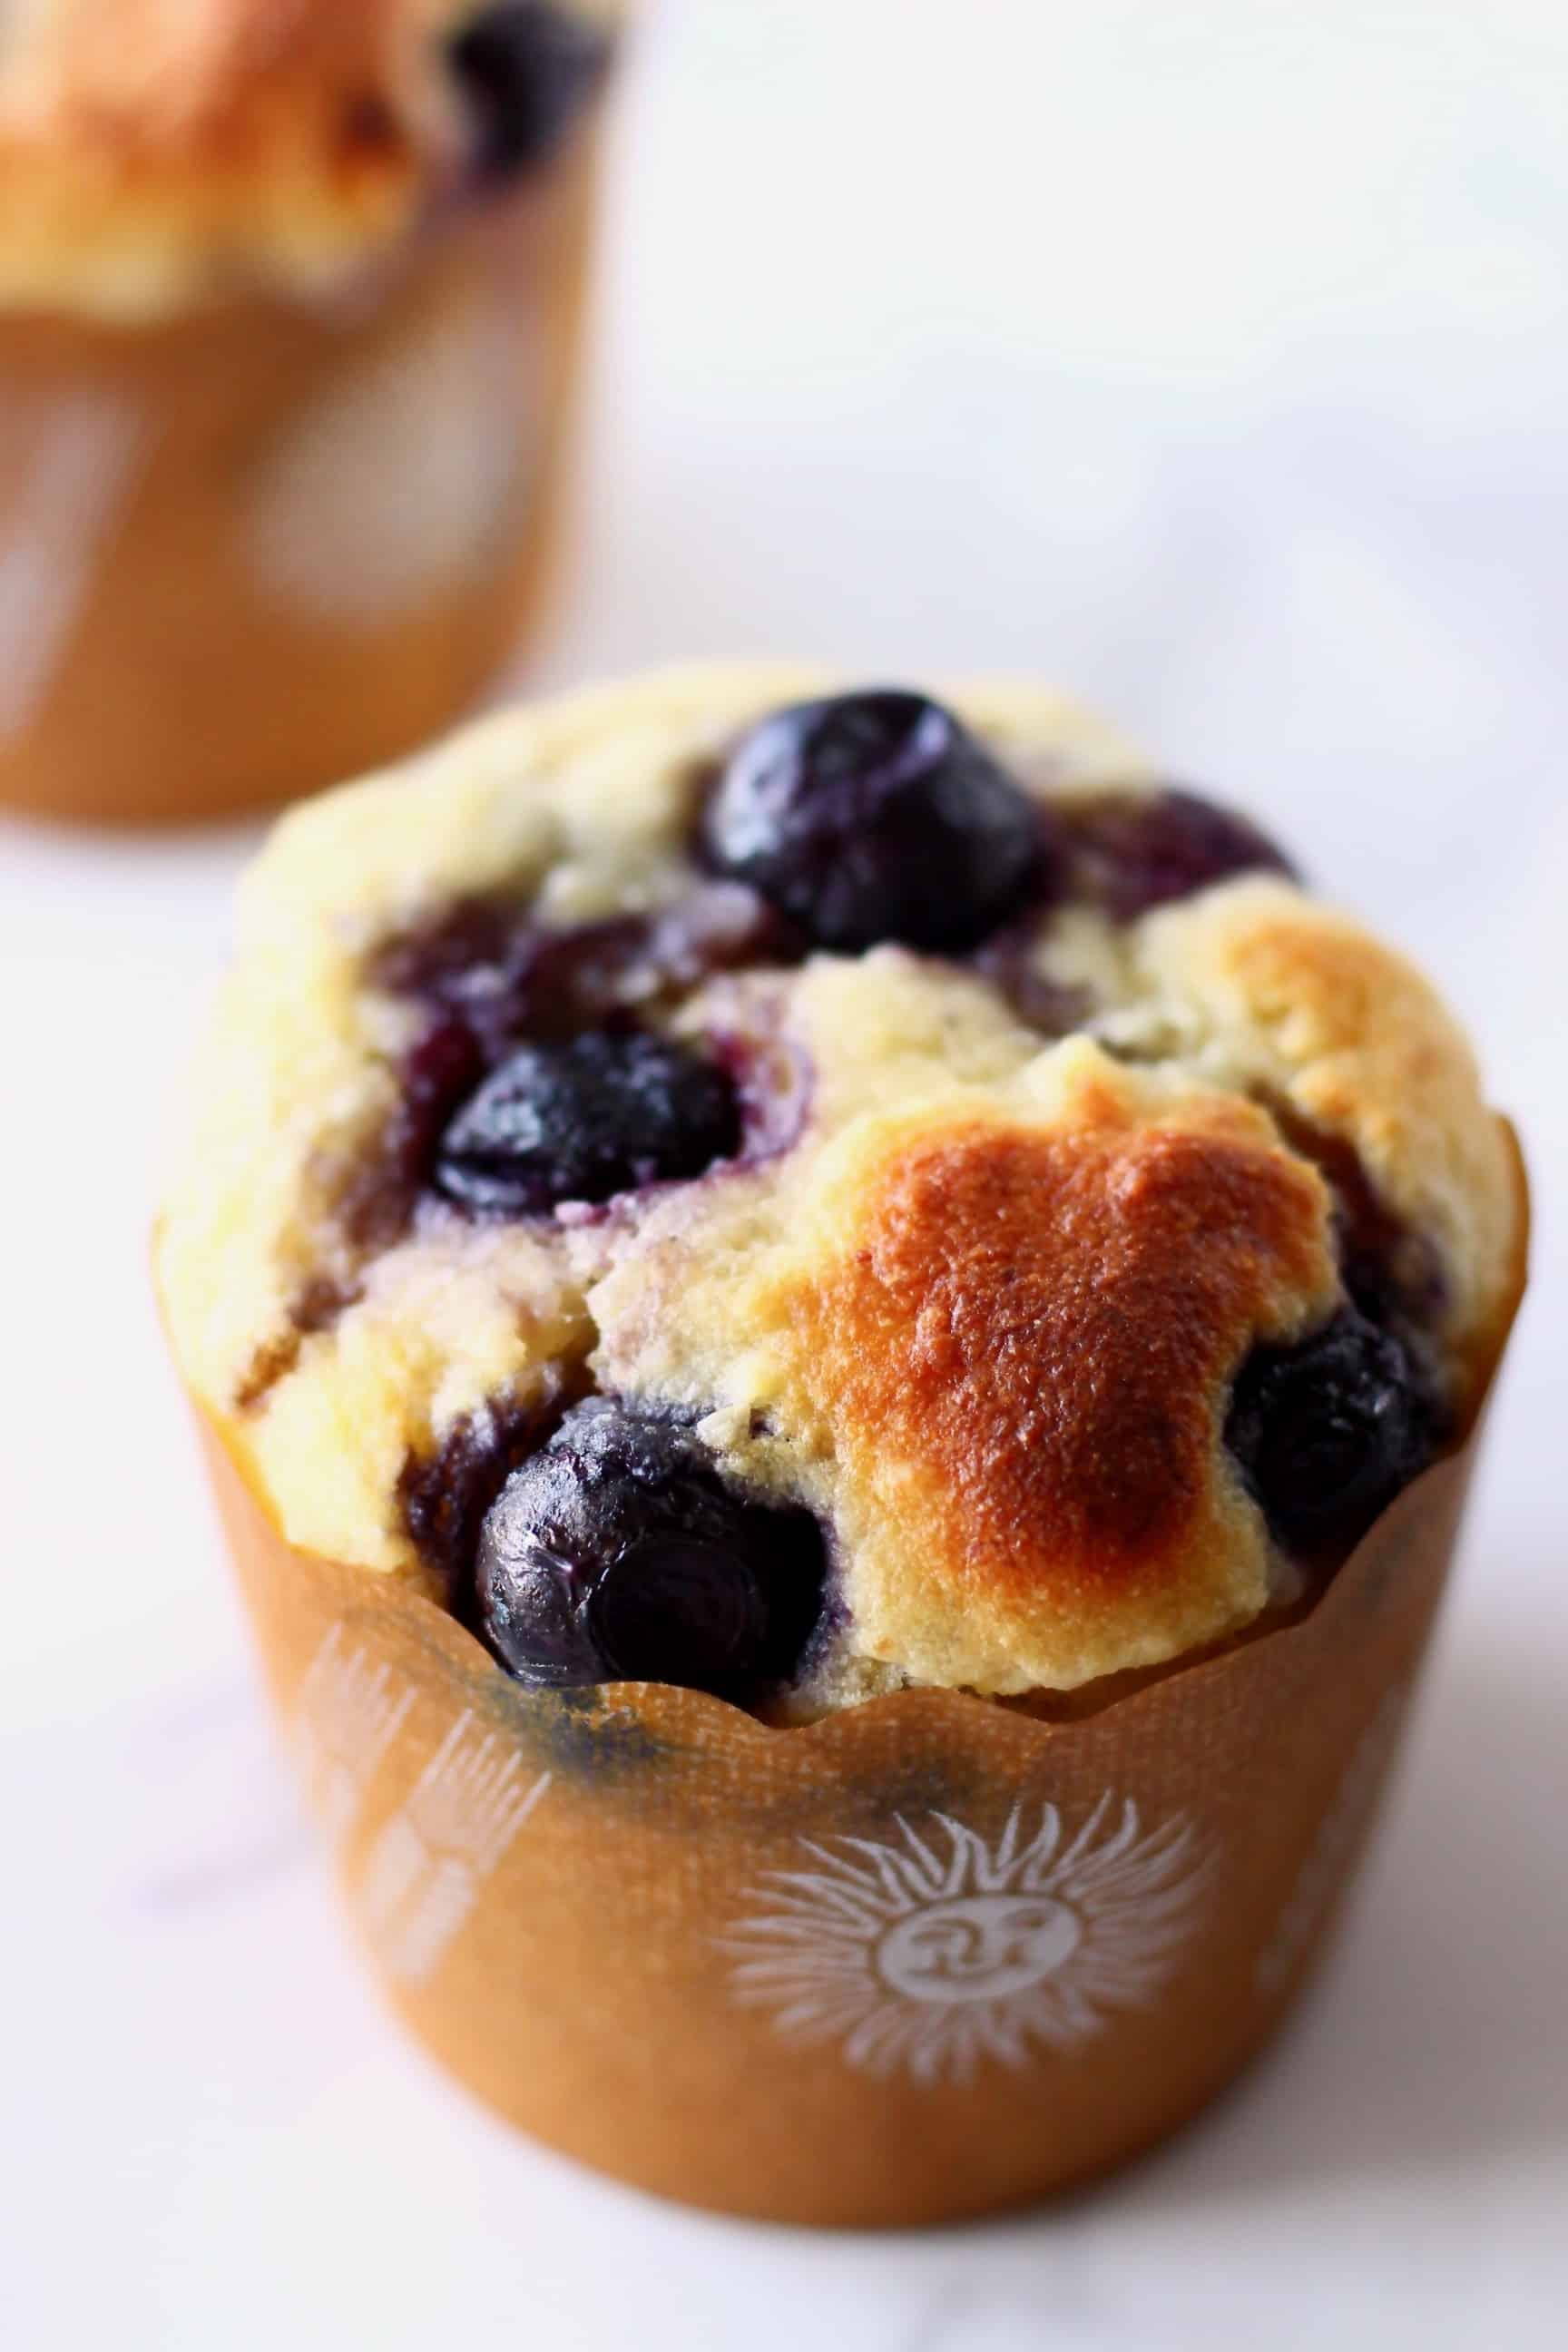 Two gluten-free vegan blueberry banana muffins in brown muffin cases